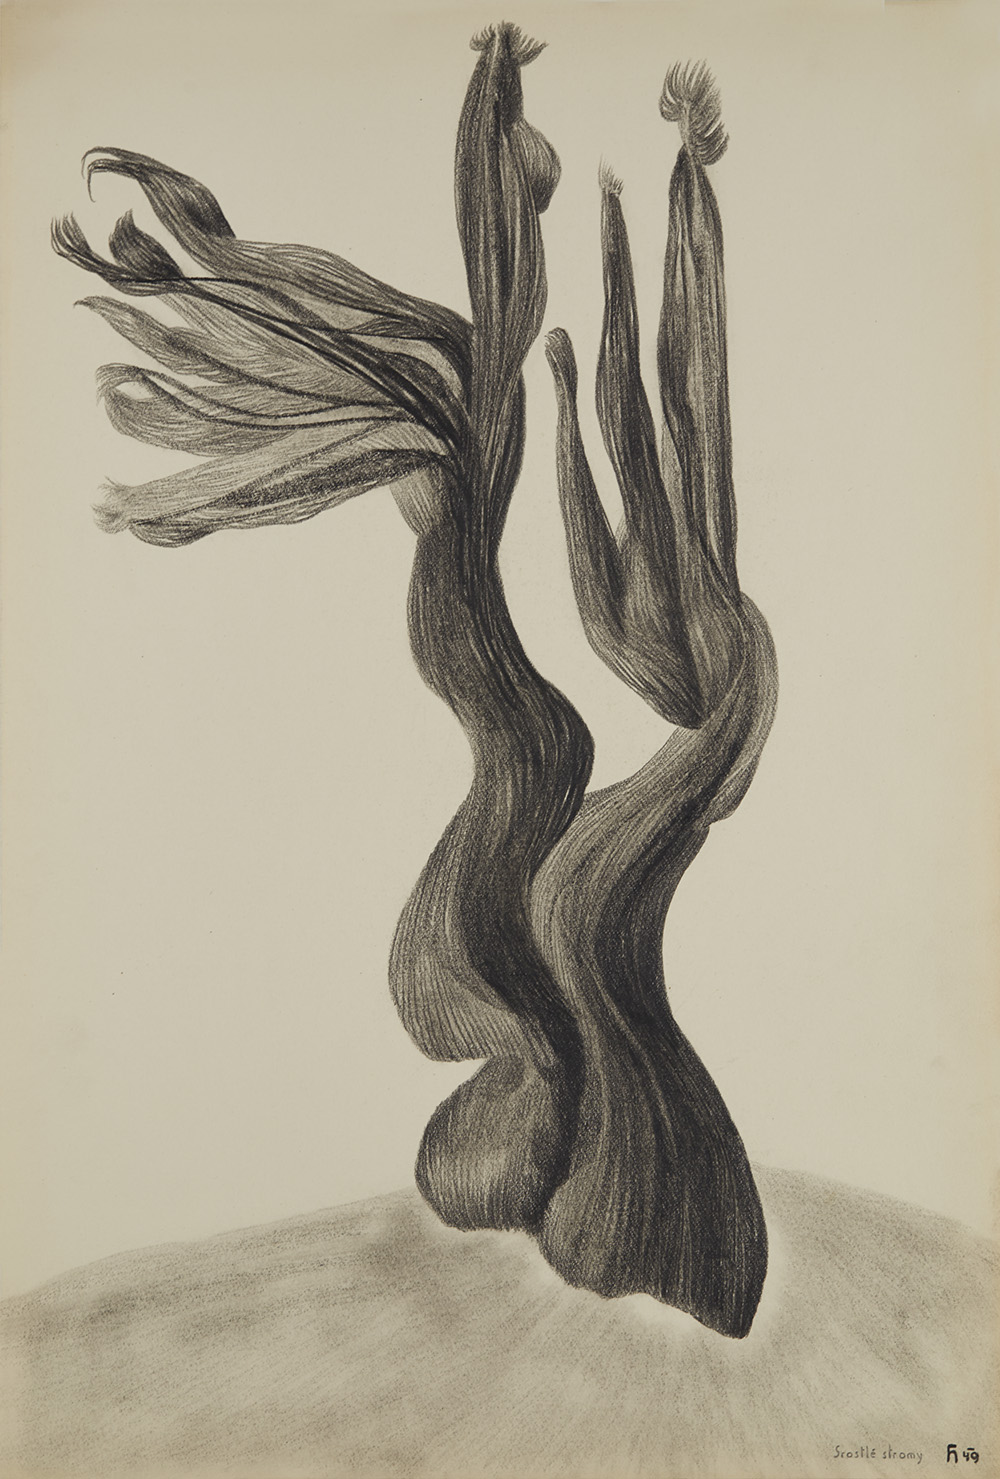 Karel Havlíček  Srostlé stromy / Fused Trees  , 1949 Pencil on paper 16.54 x 11.81 inches 42 x 30 cm KHav 26